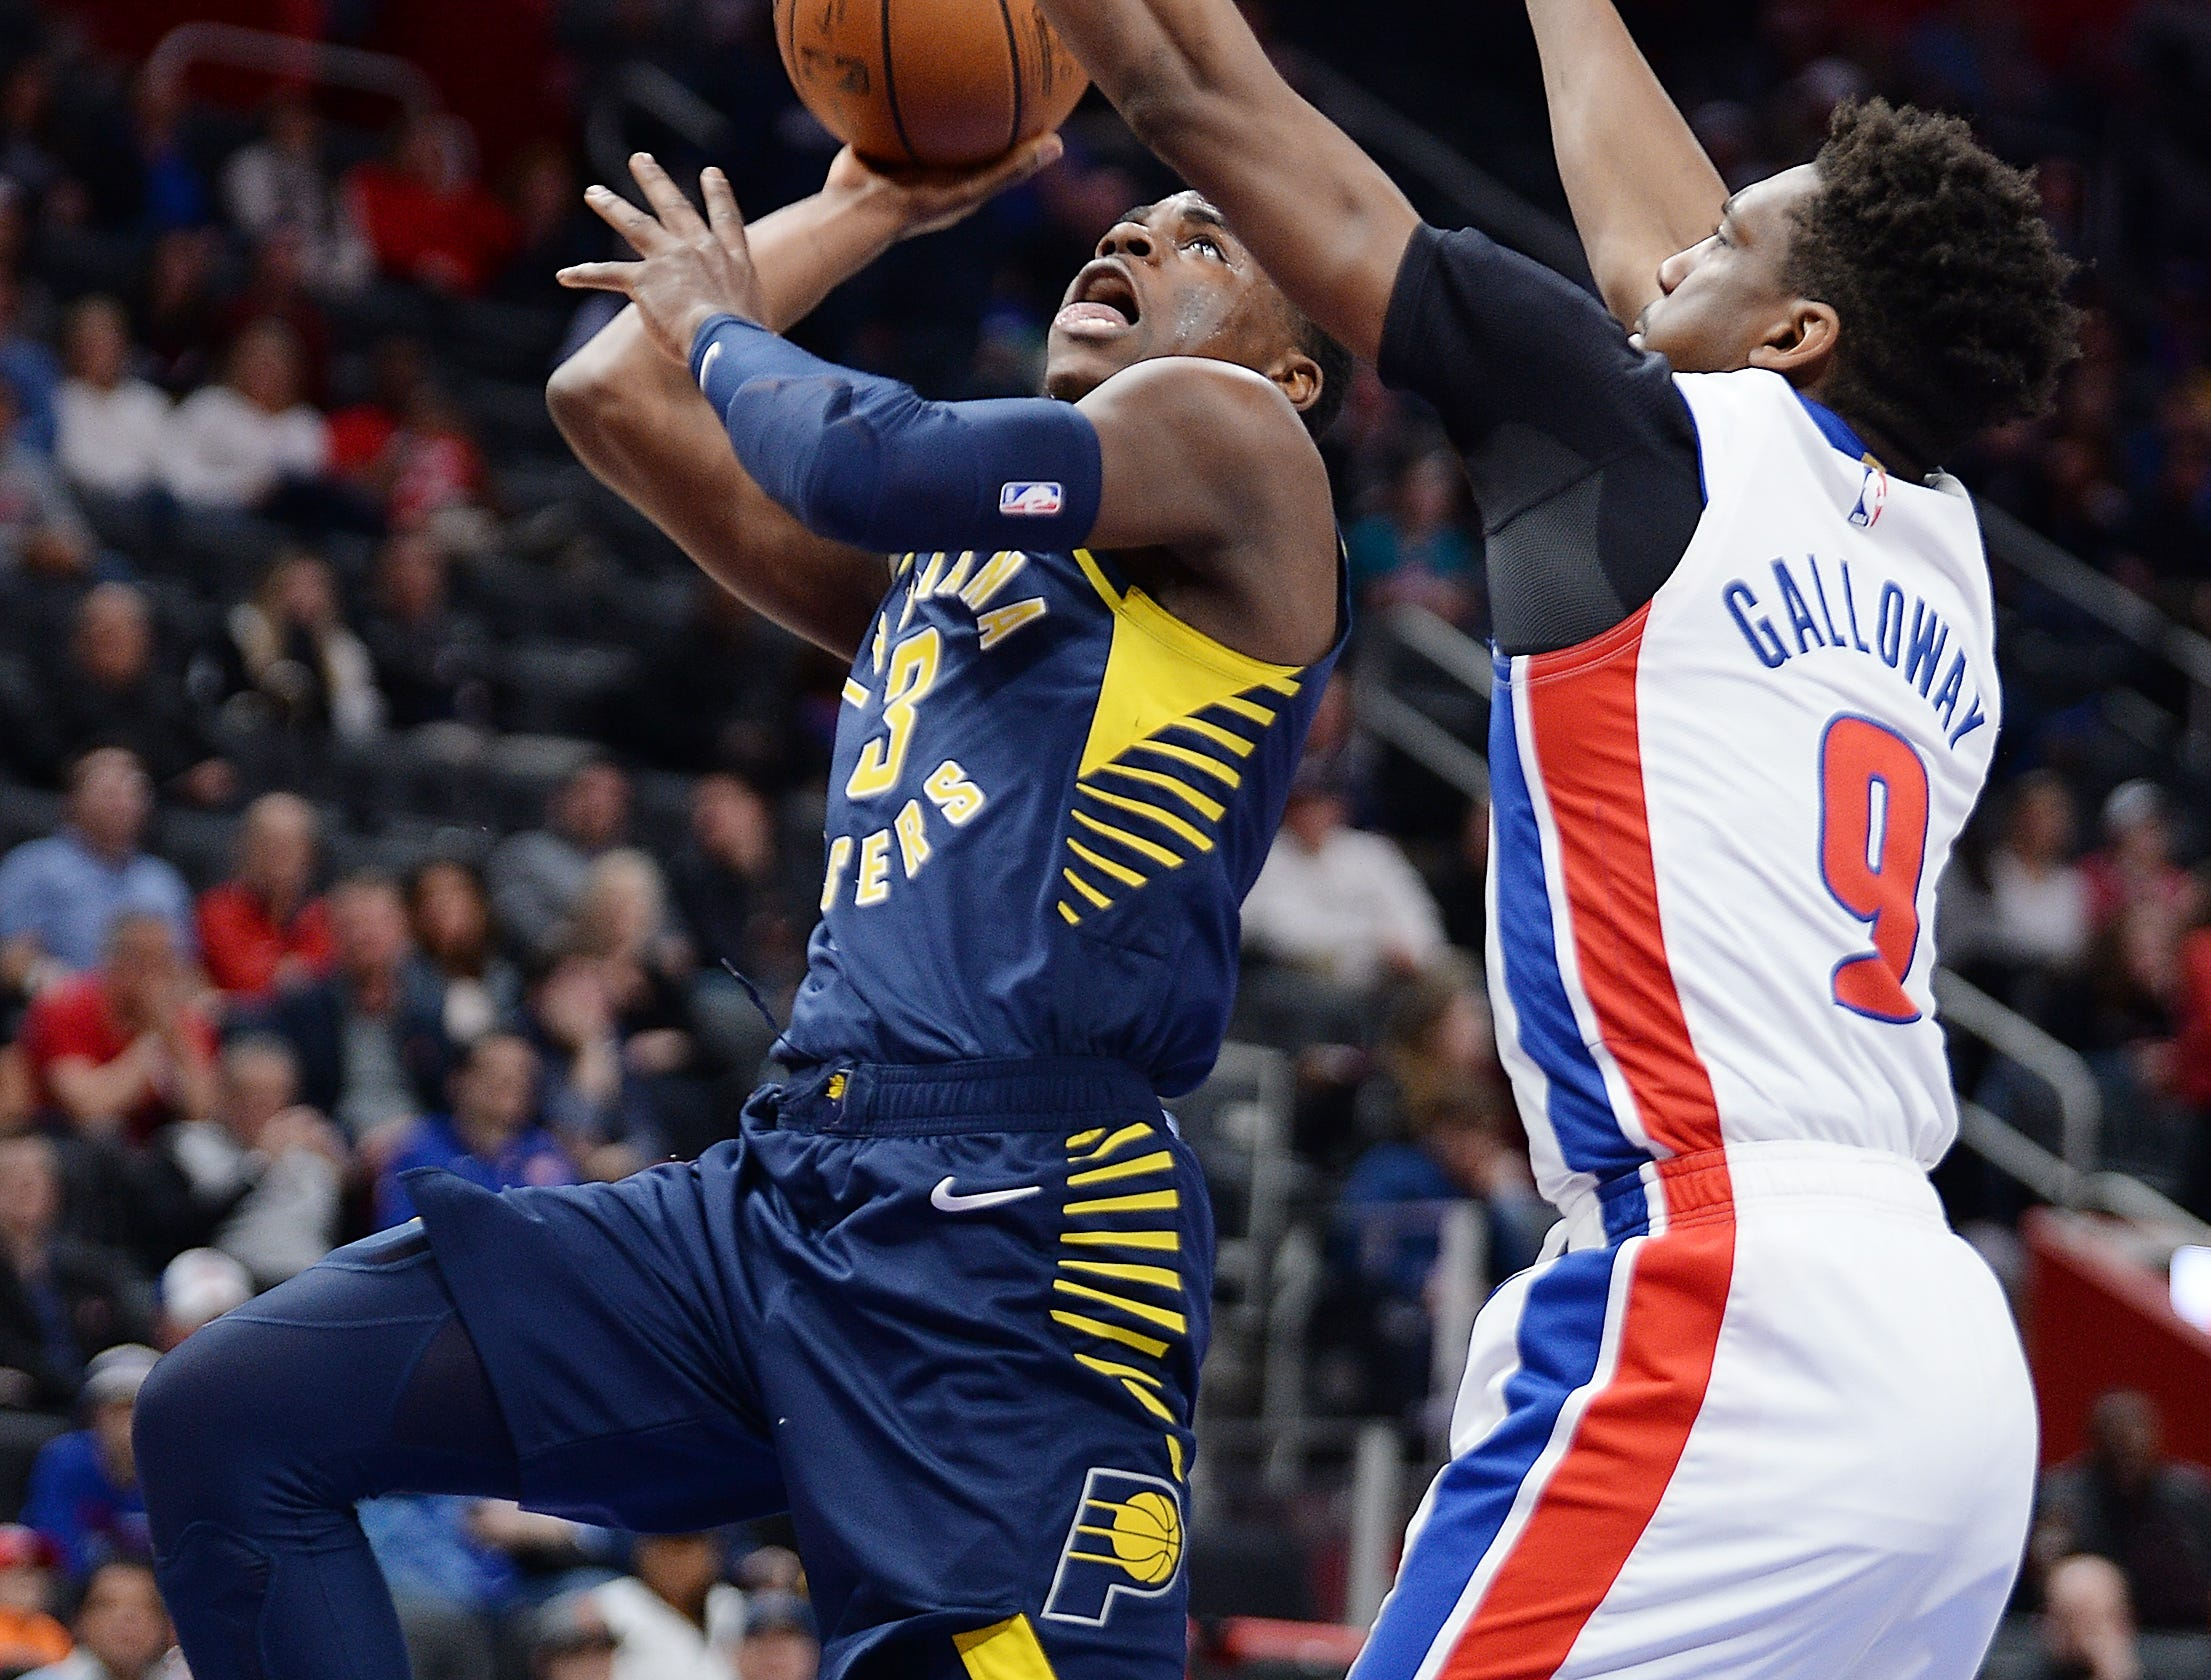 Pacers' Aaron Holiday scores over Pistons' Langston Galloway in the fourth quarter. The Pacers defeated the Pistons 108-89, Wednesday, April 3, 2019 at Little Caesars Arena in Detroit, Michigan.